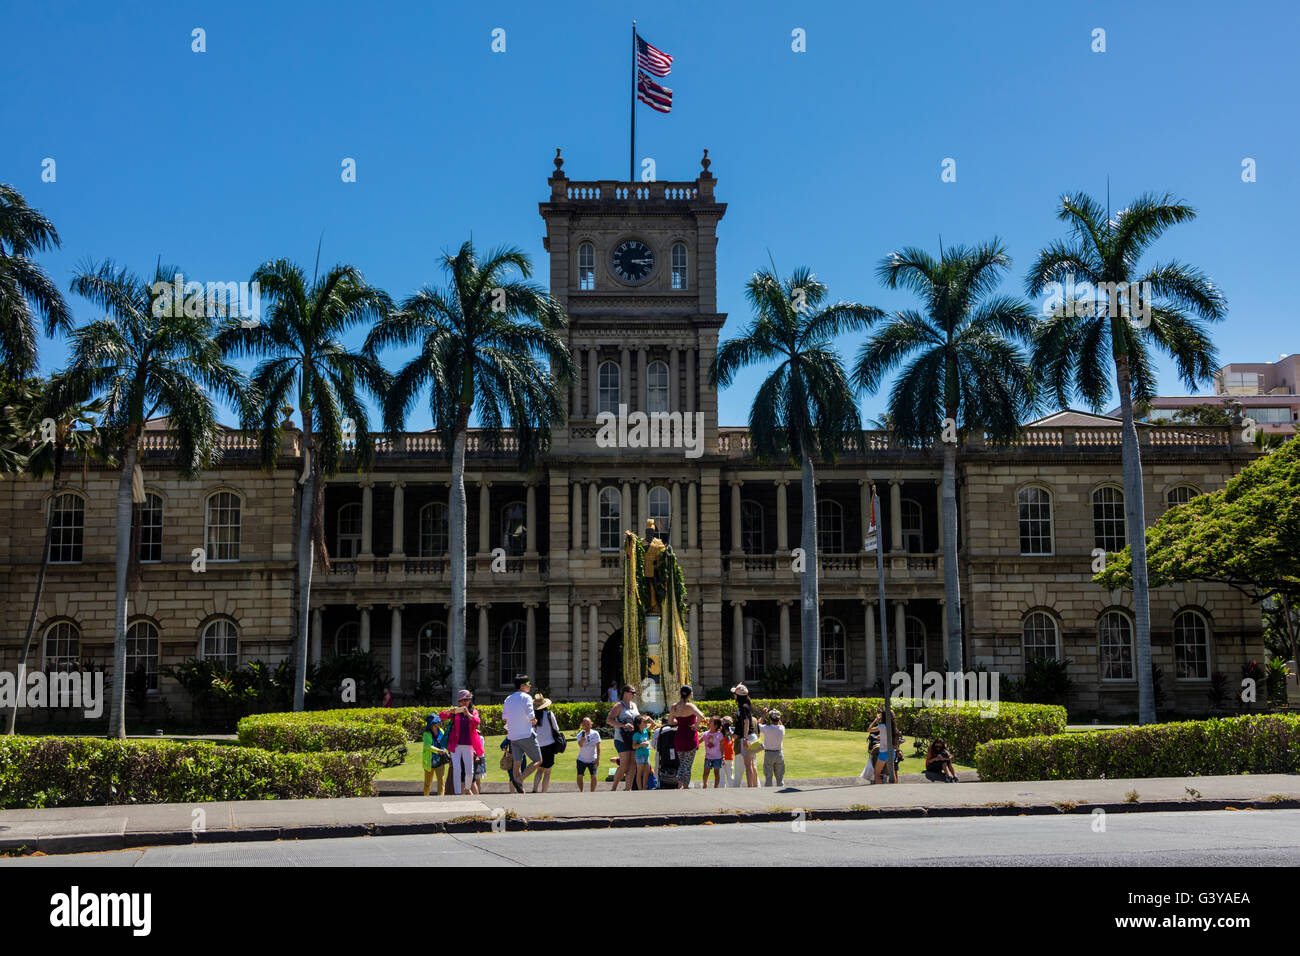 A view of tourists at the King Kamehameha Statue at the Aliʻiolani Hale. - Stock Image